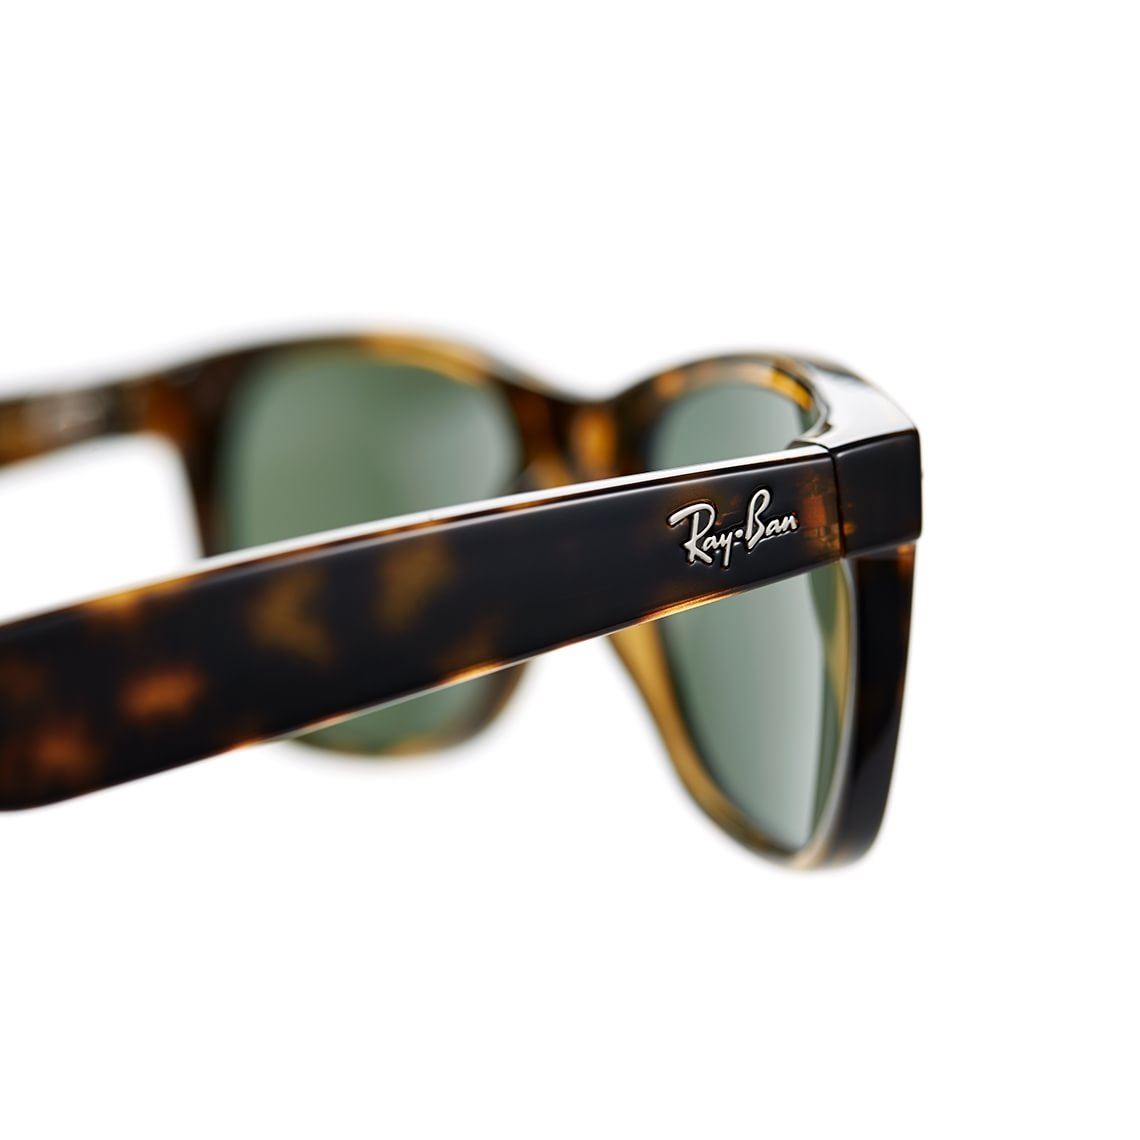 Ray-Ban New Wayfarer RB2132 902L 55